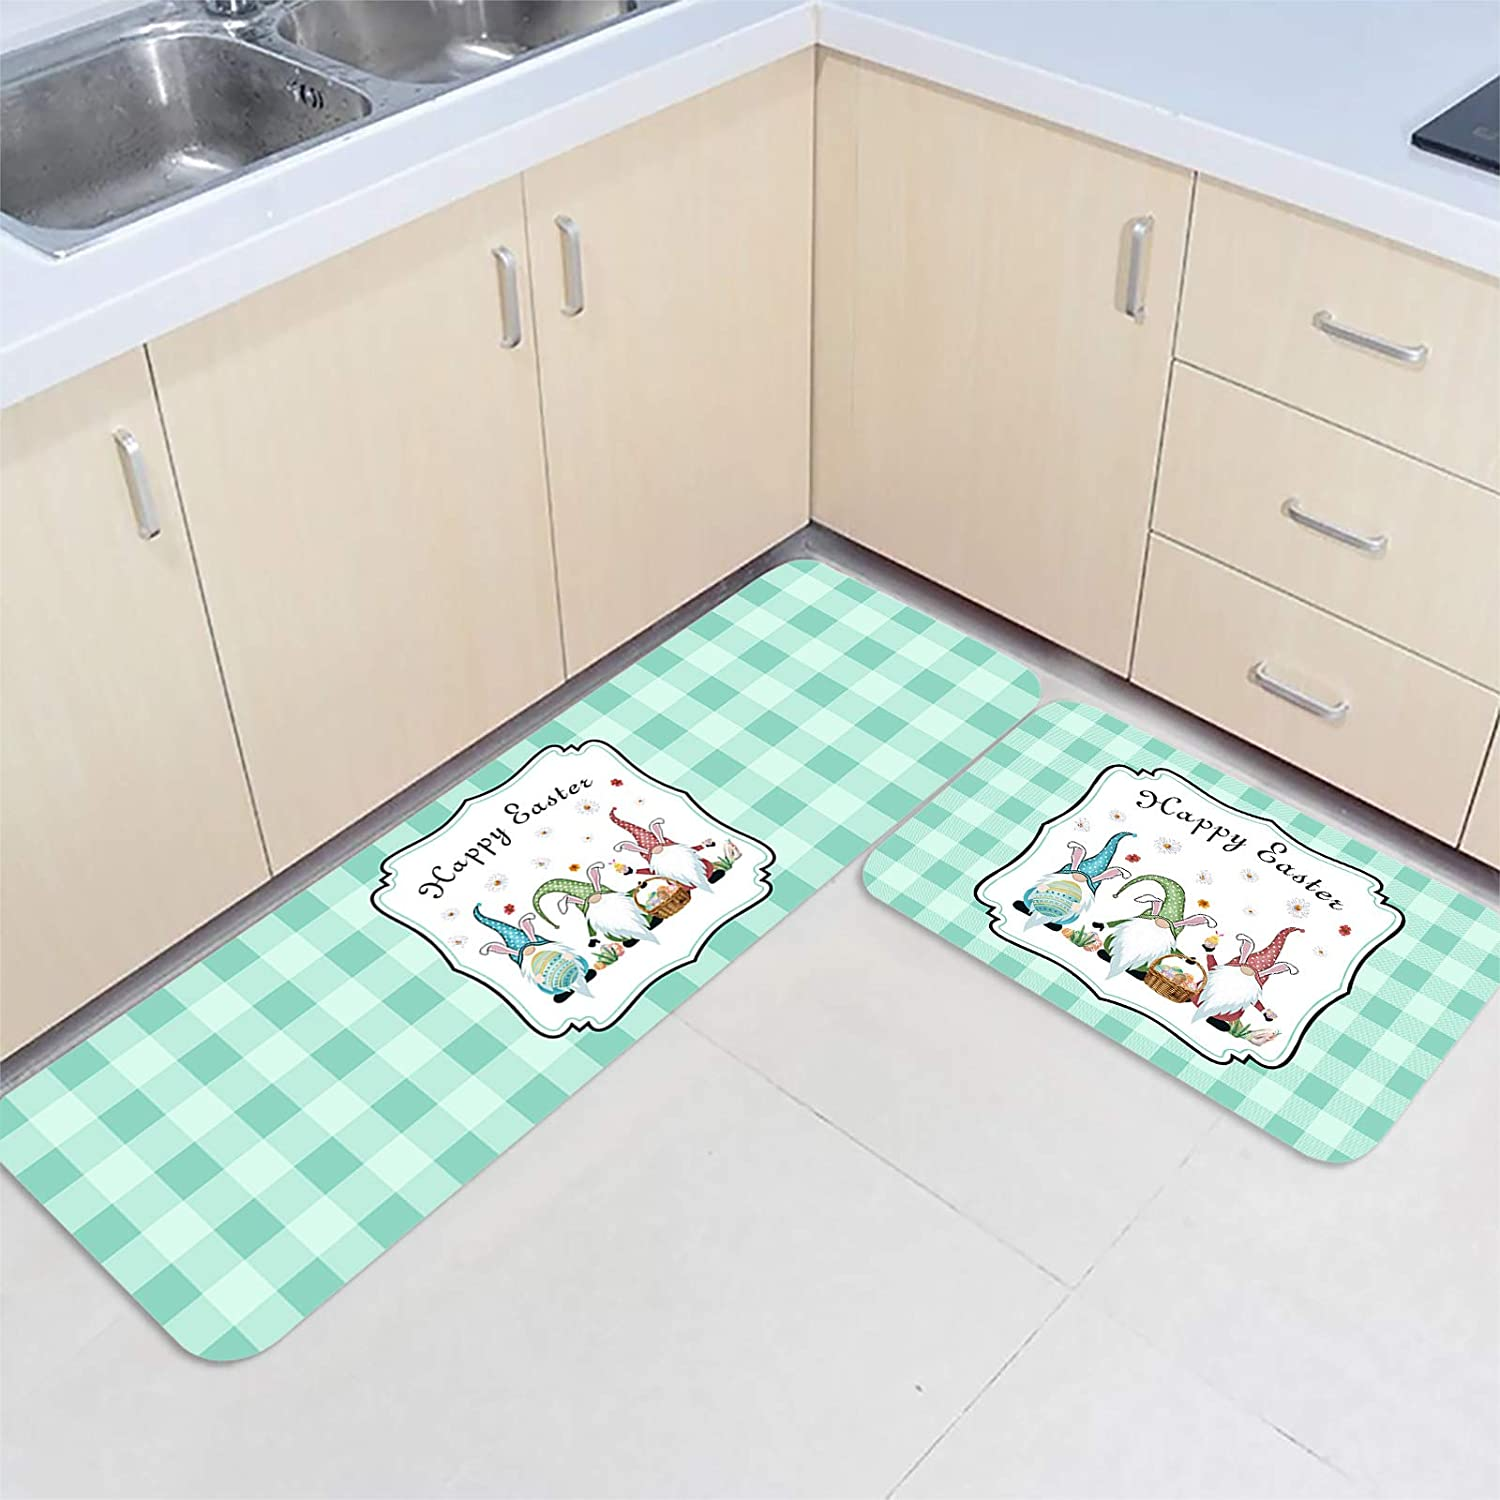 2 Pieces Kitchen Mats Floor Area Easte Special price for a Bargain sale limited time Set Non-Slip Doormat Rug